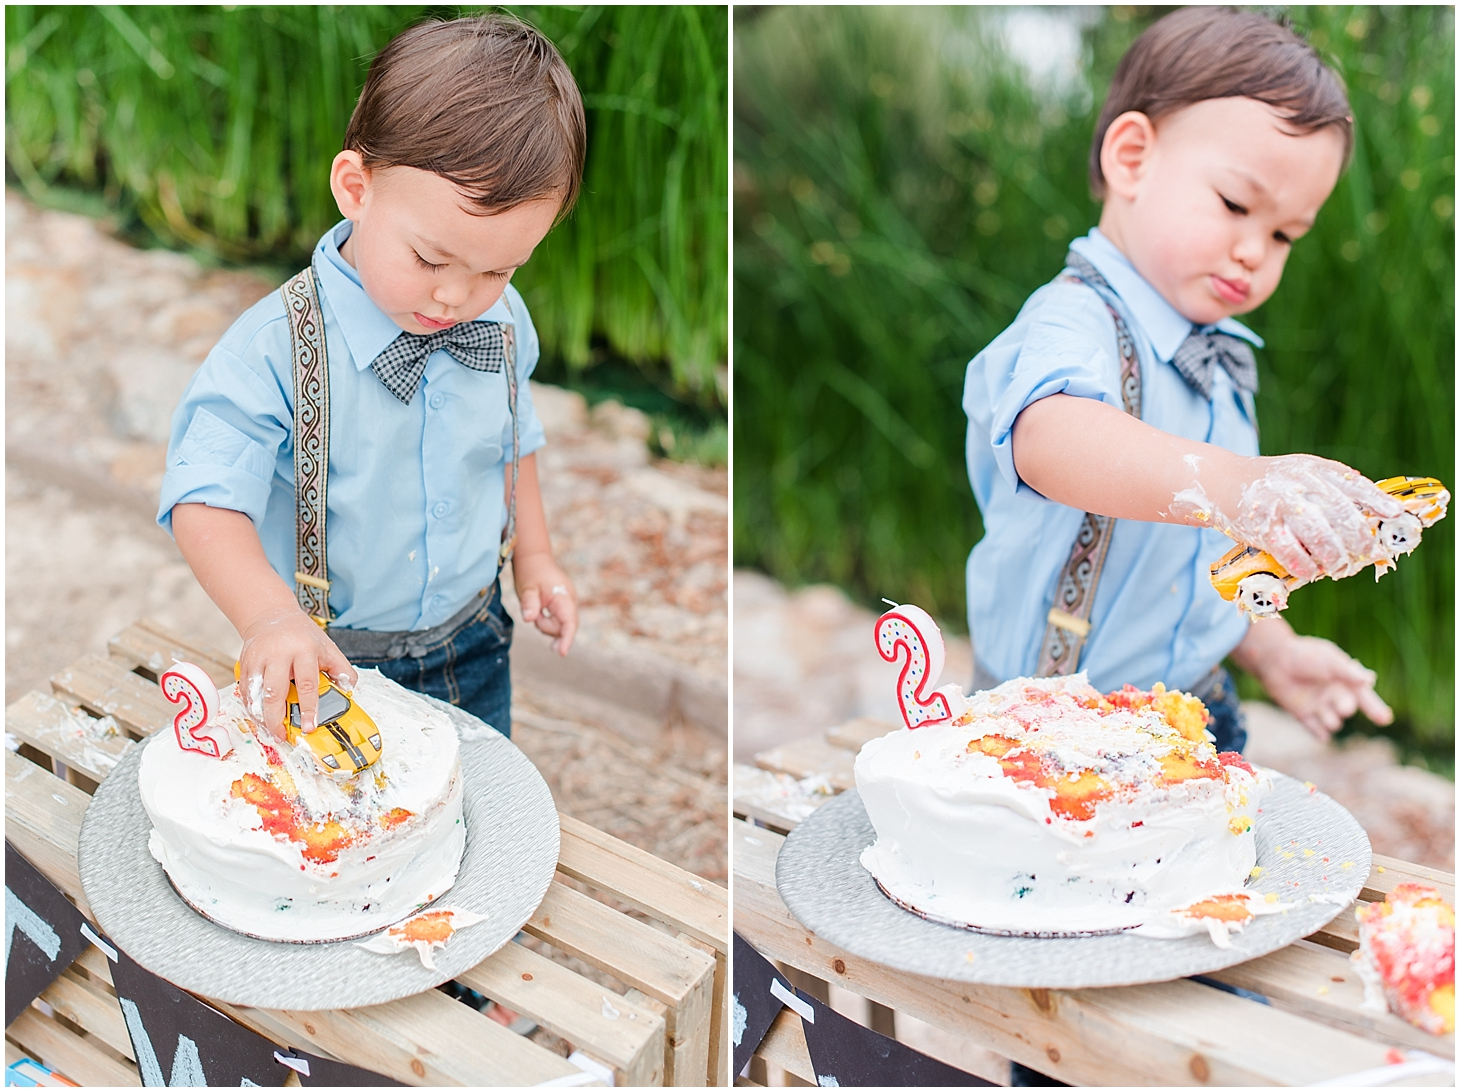 Lincoln's Cake Smash Photo Session for his third birthday at Gilbert Riparian Preserve. Photos by Jade Min Photography.